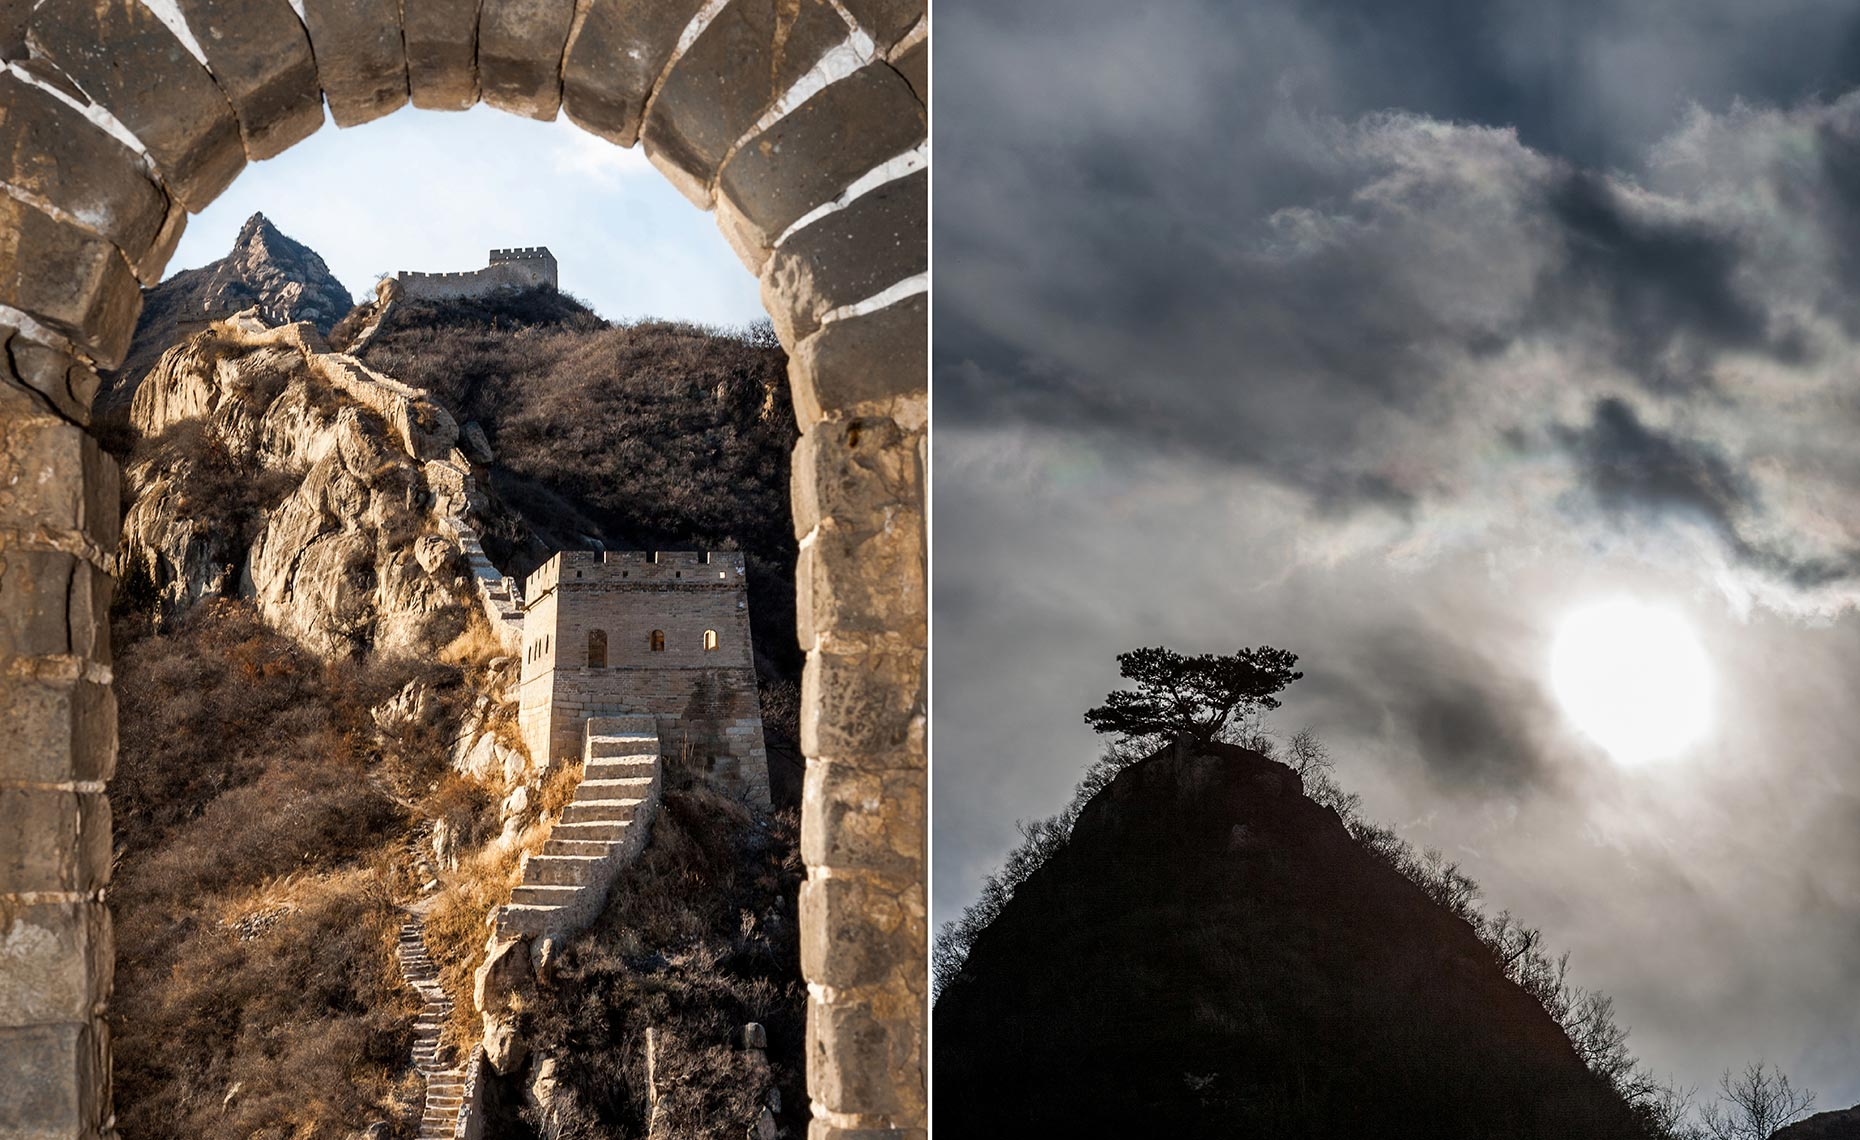 74_Beijing_China_The_Great_Wall_Environment_Landscape_Chris_Wellhausen_Photography.JPG